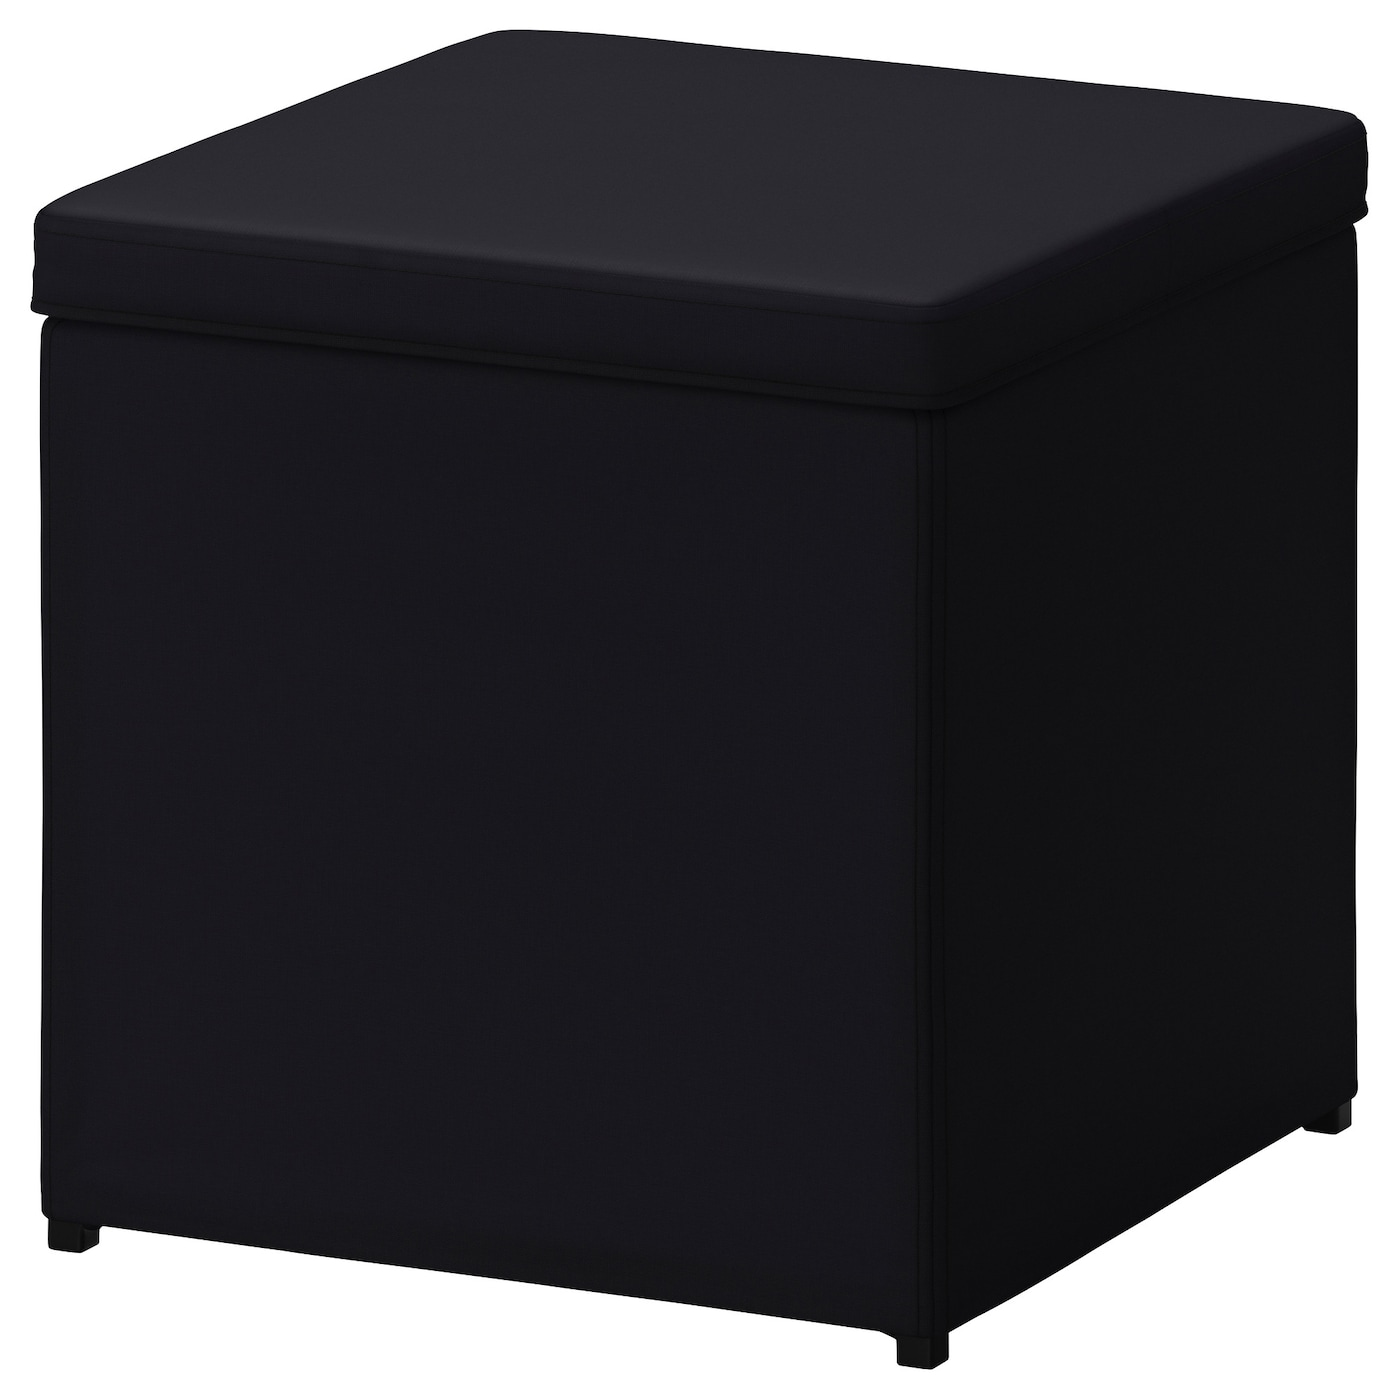 Superieur IKEA BOSNÄS Footstool With Storage Works As An Extra Seat Or Footstool.